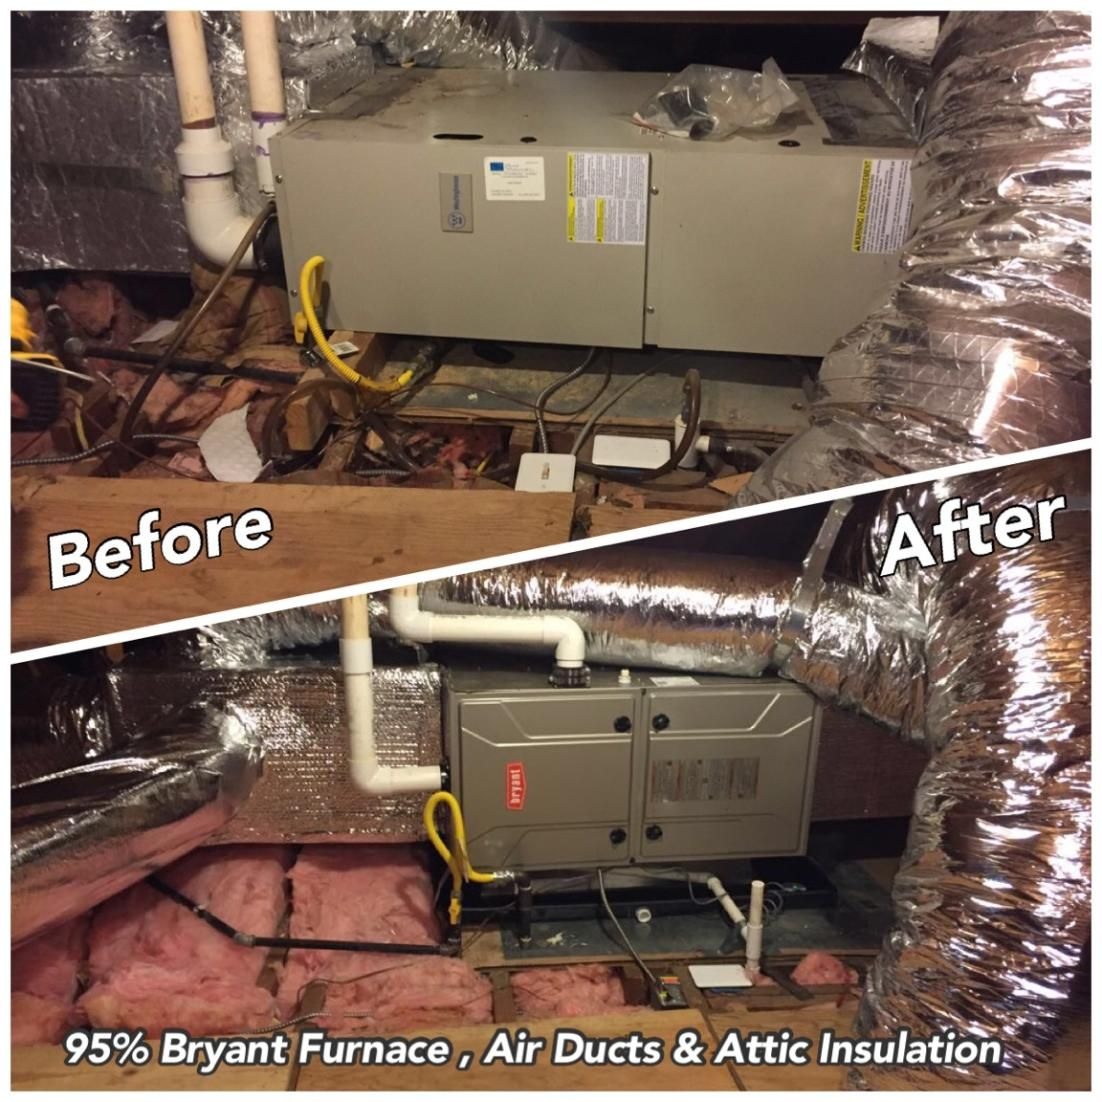 Before after photos of a Bryant furnace, air ducts, and